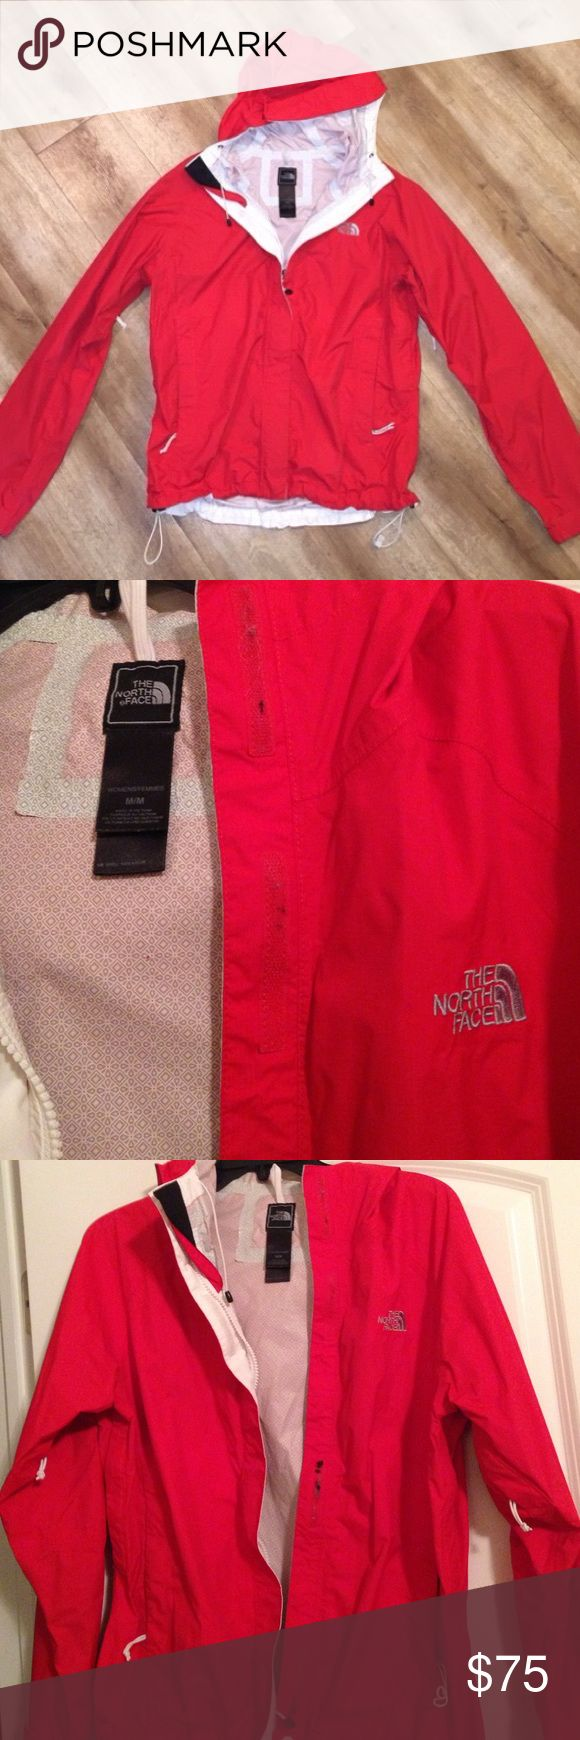 Red North Face Rain Jacket GUC Red Northface Rain Jacket. No flaws other than the Velcro not being pristine. The Velcro could easily be defuzzed. See last picture. Otherwise this jacket is in great condition! North Face Jackets & Coats